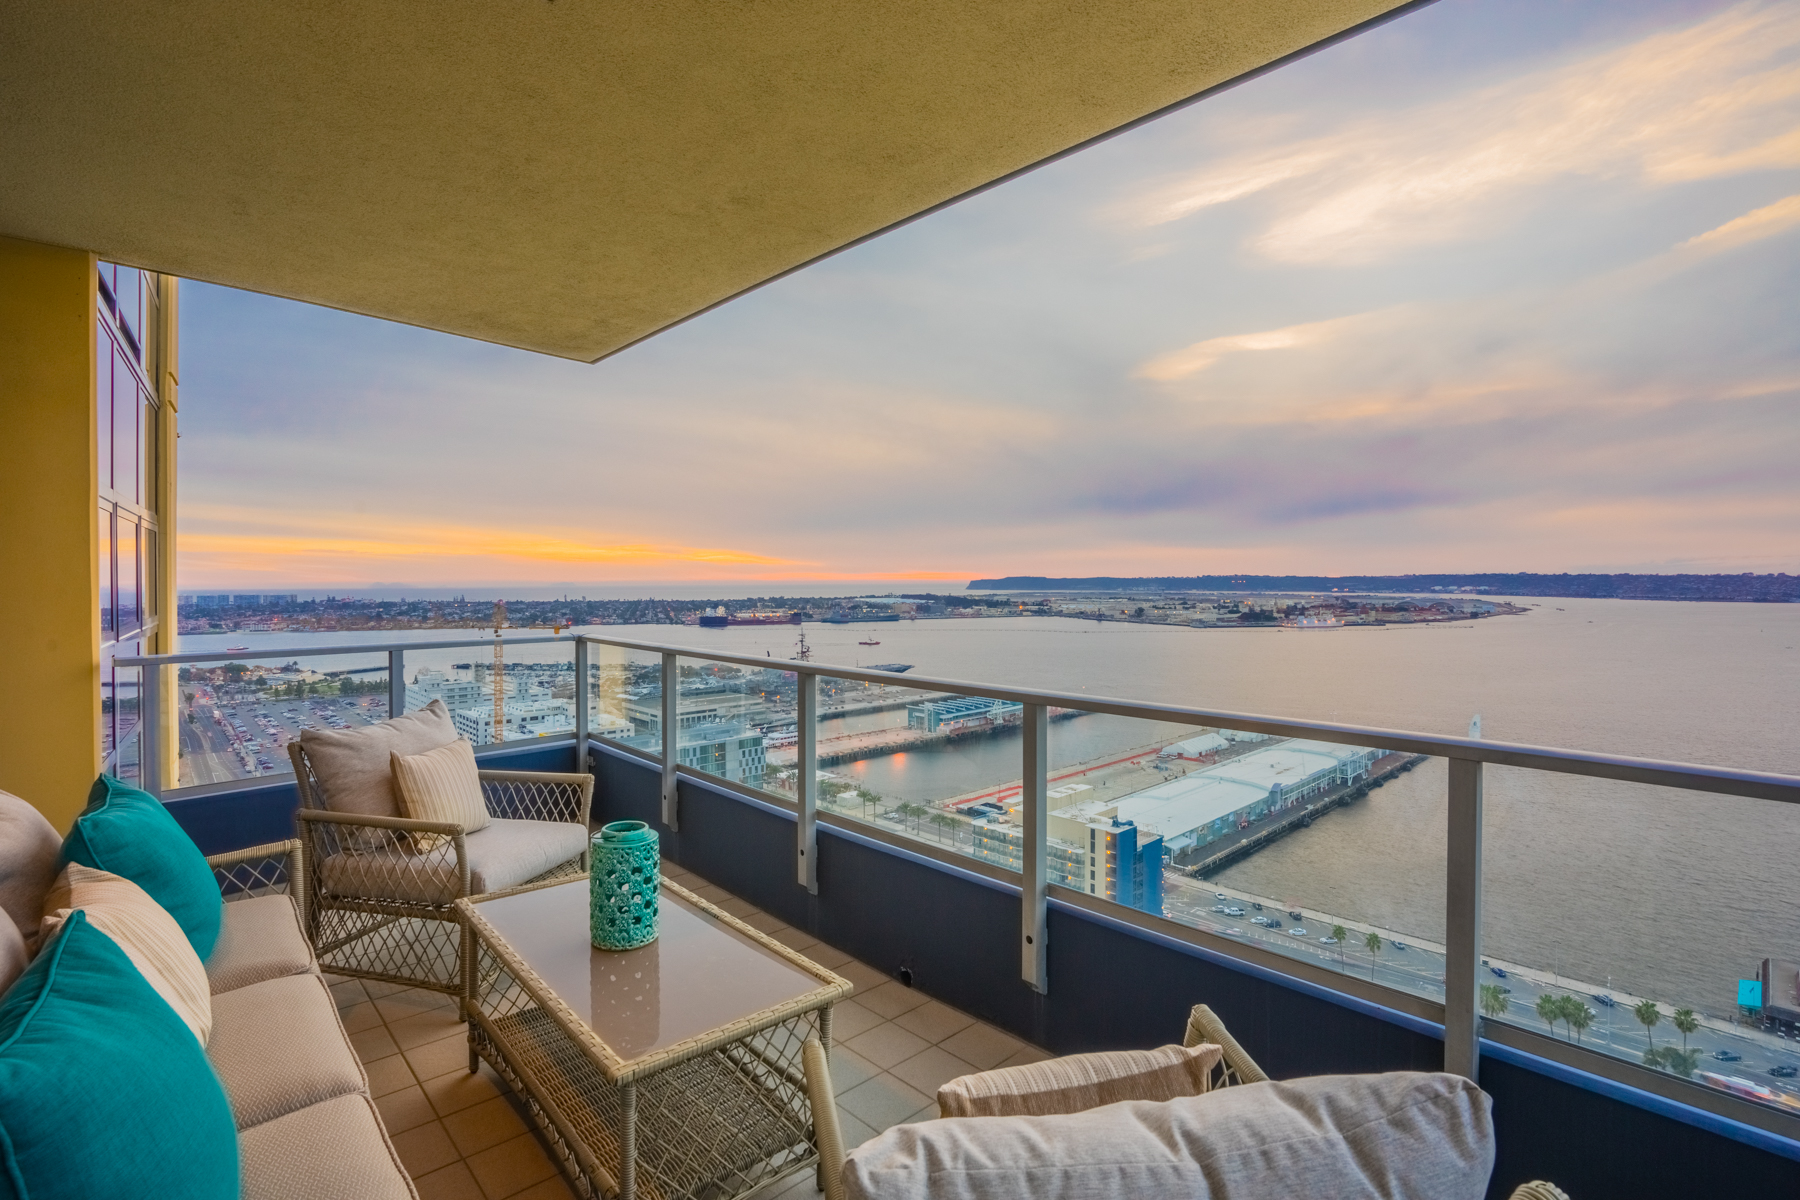 Penthouse Level 2 Bedroom for Sale At Bayside